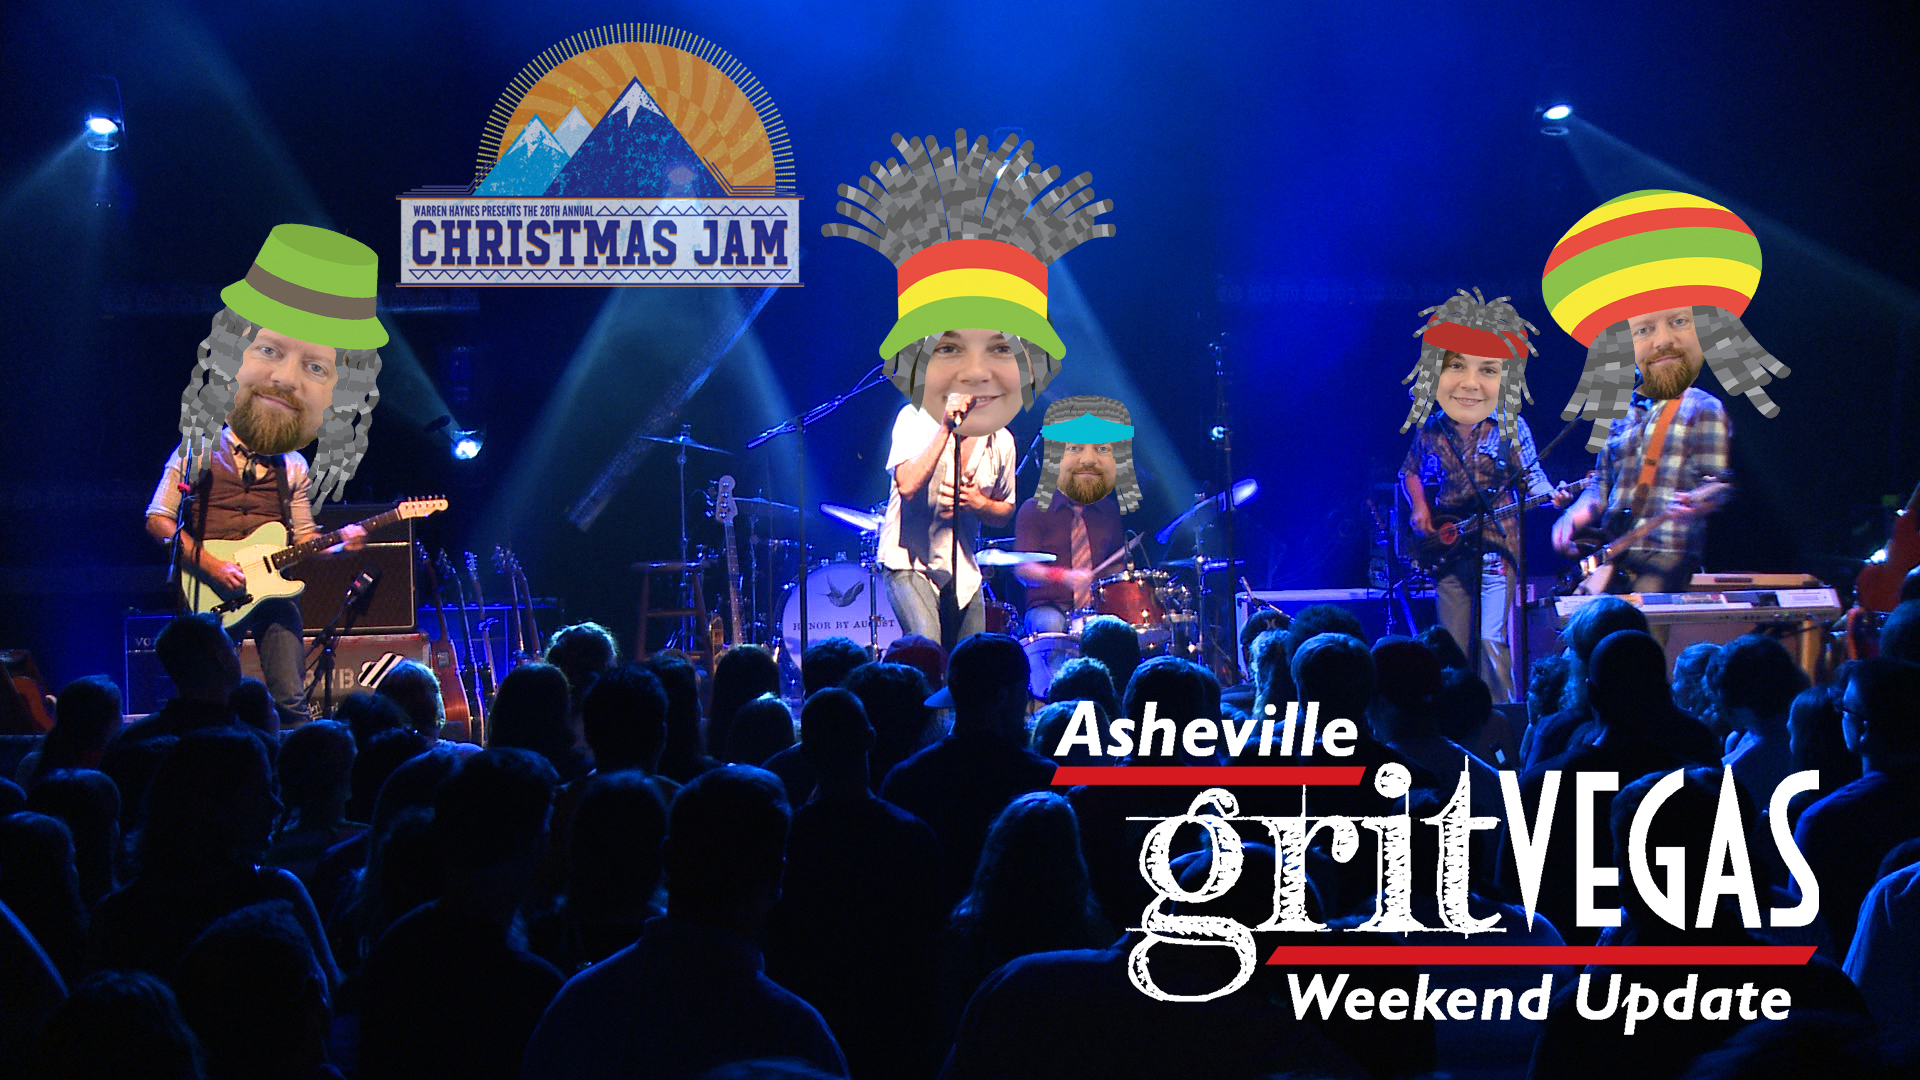 VIDEO Things to do around Asheville this weekend starting Dec. 8